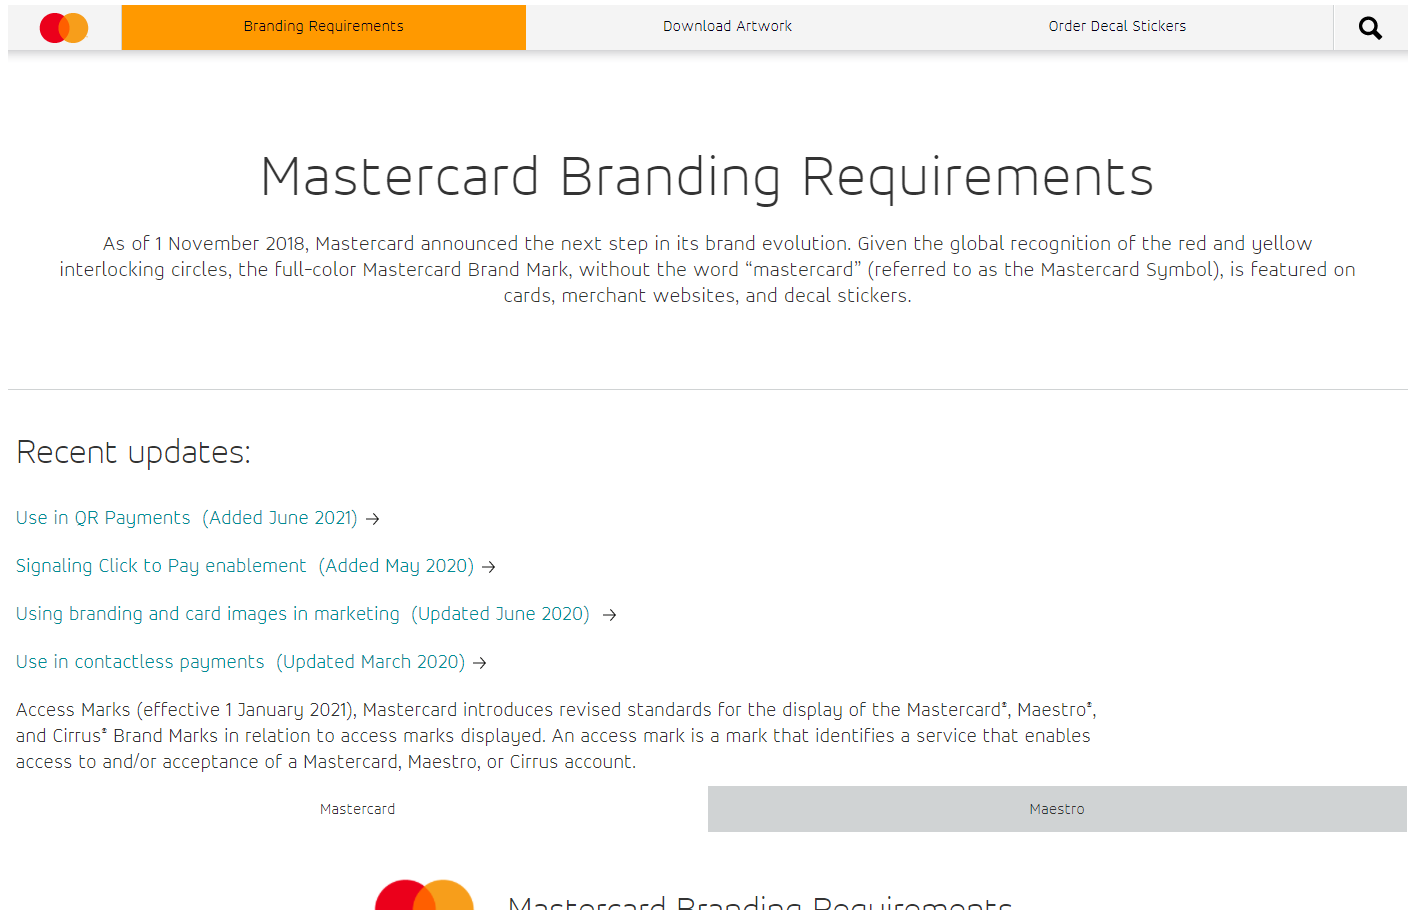 Mastercard's Brand Guide